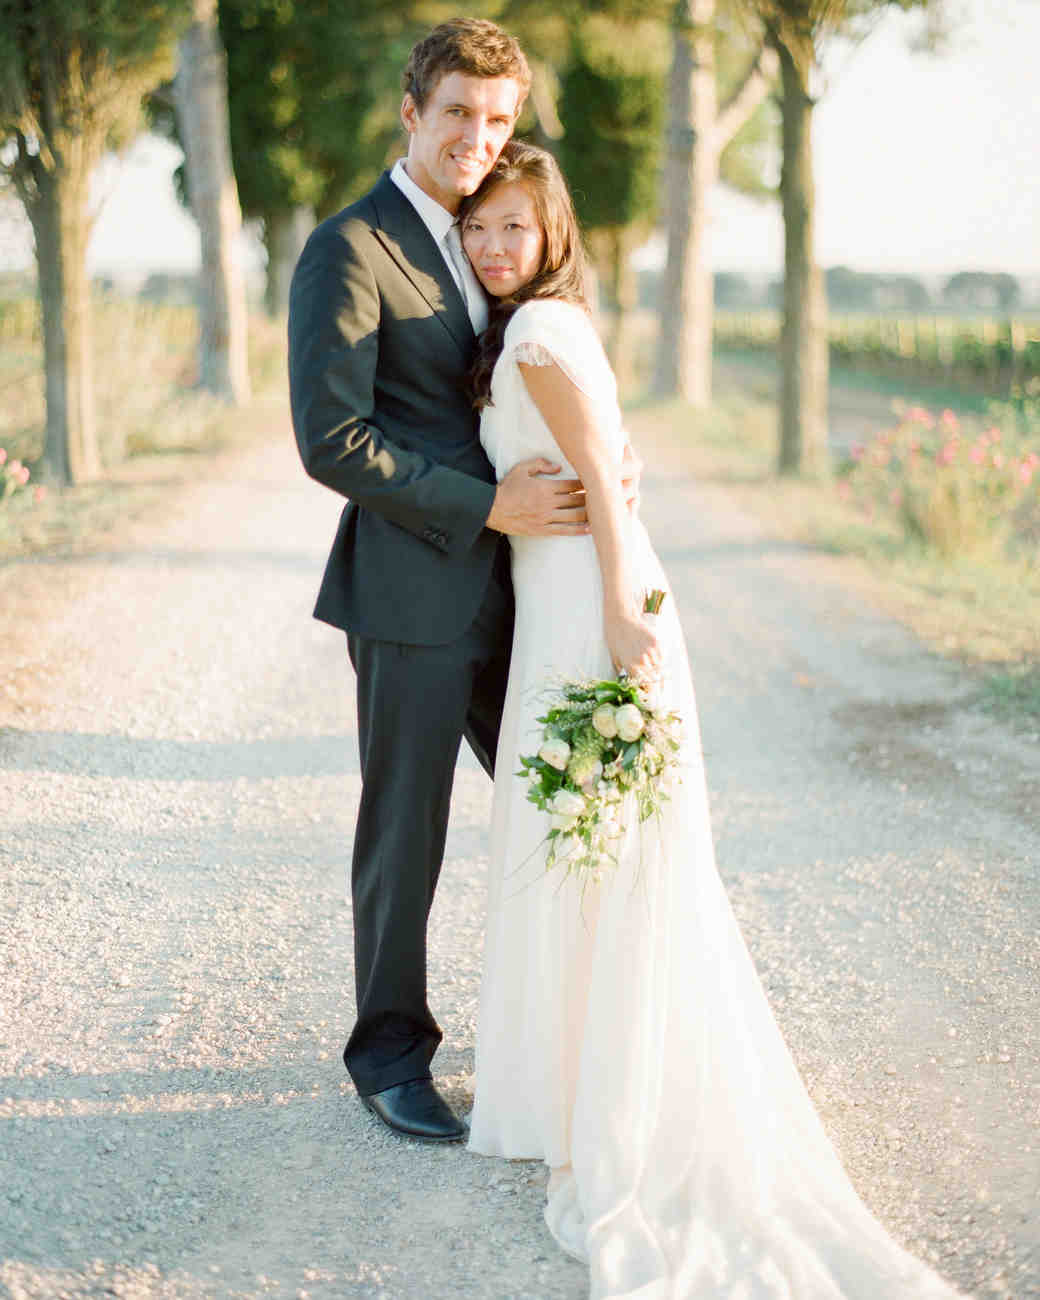 Bride And Groom Only Wedding Ideas: An Intimate Wedding Outdoors In Italy